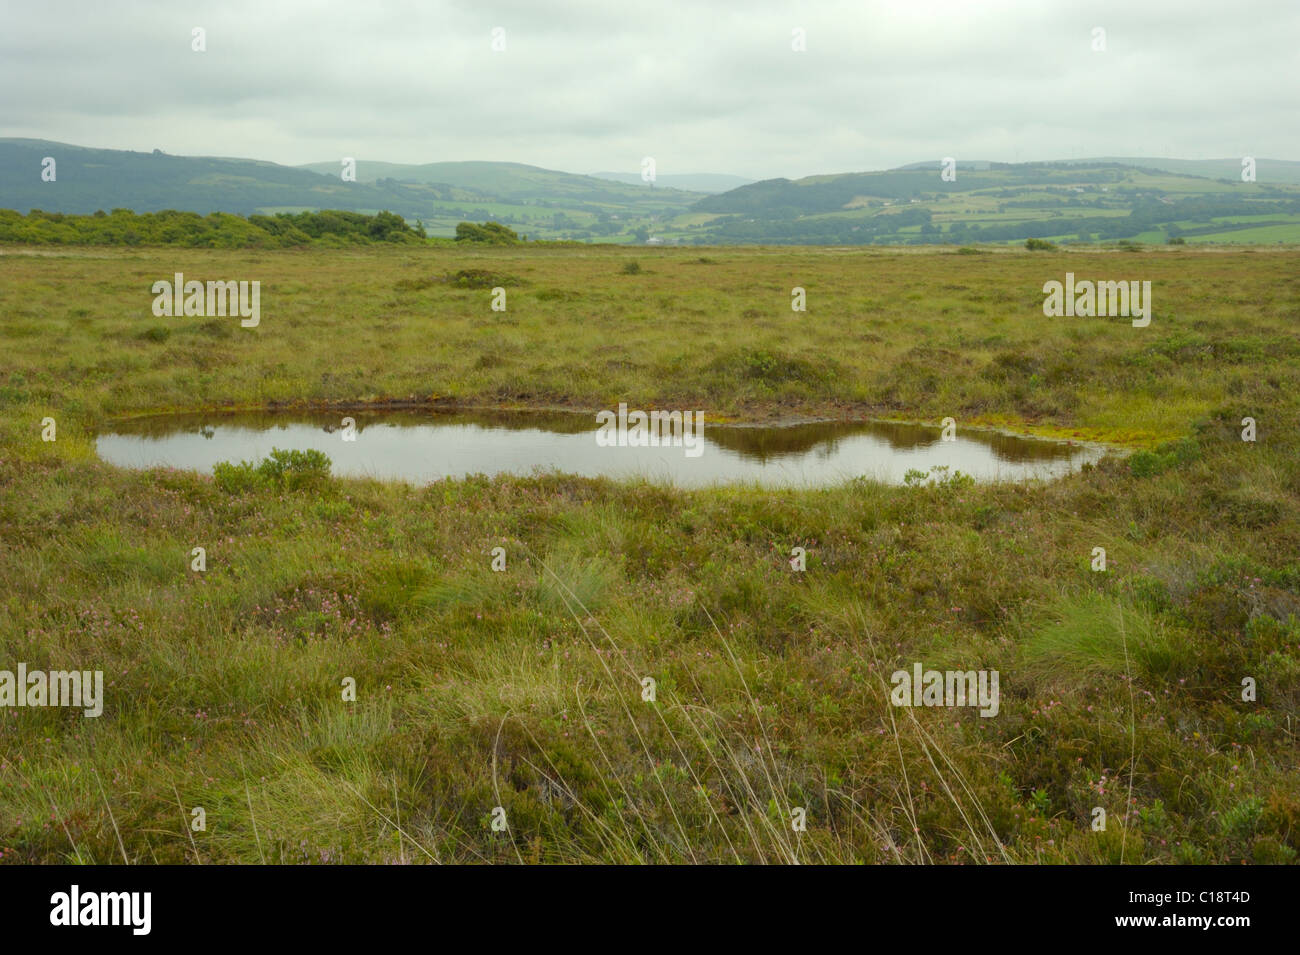 Pool at Cors Fochno - Stock Image